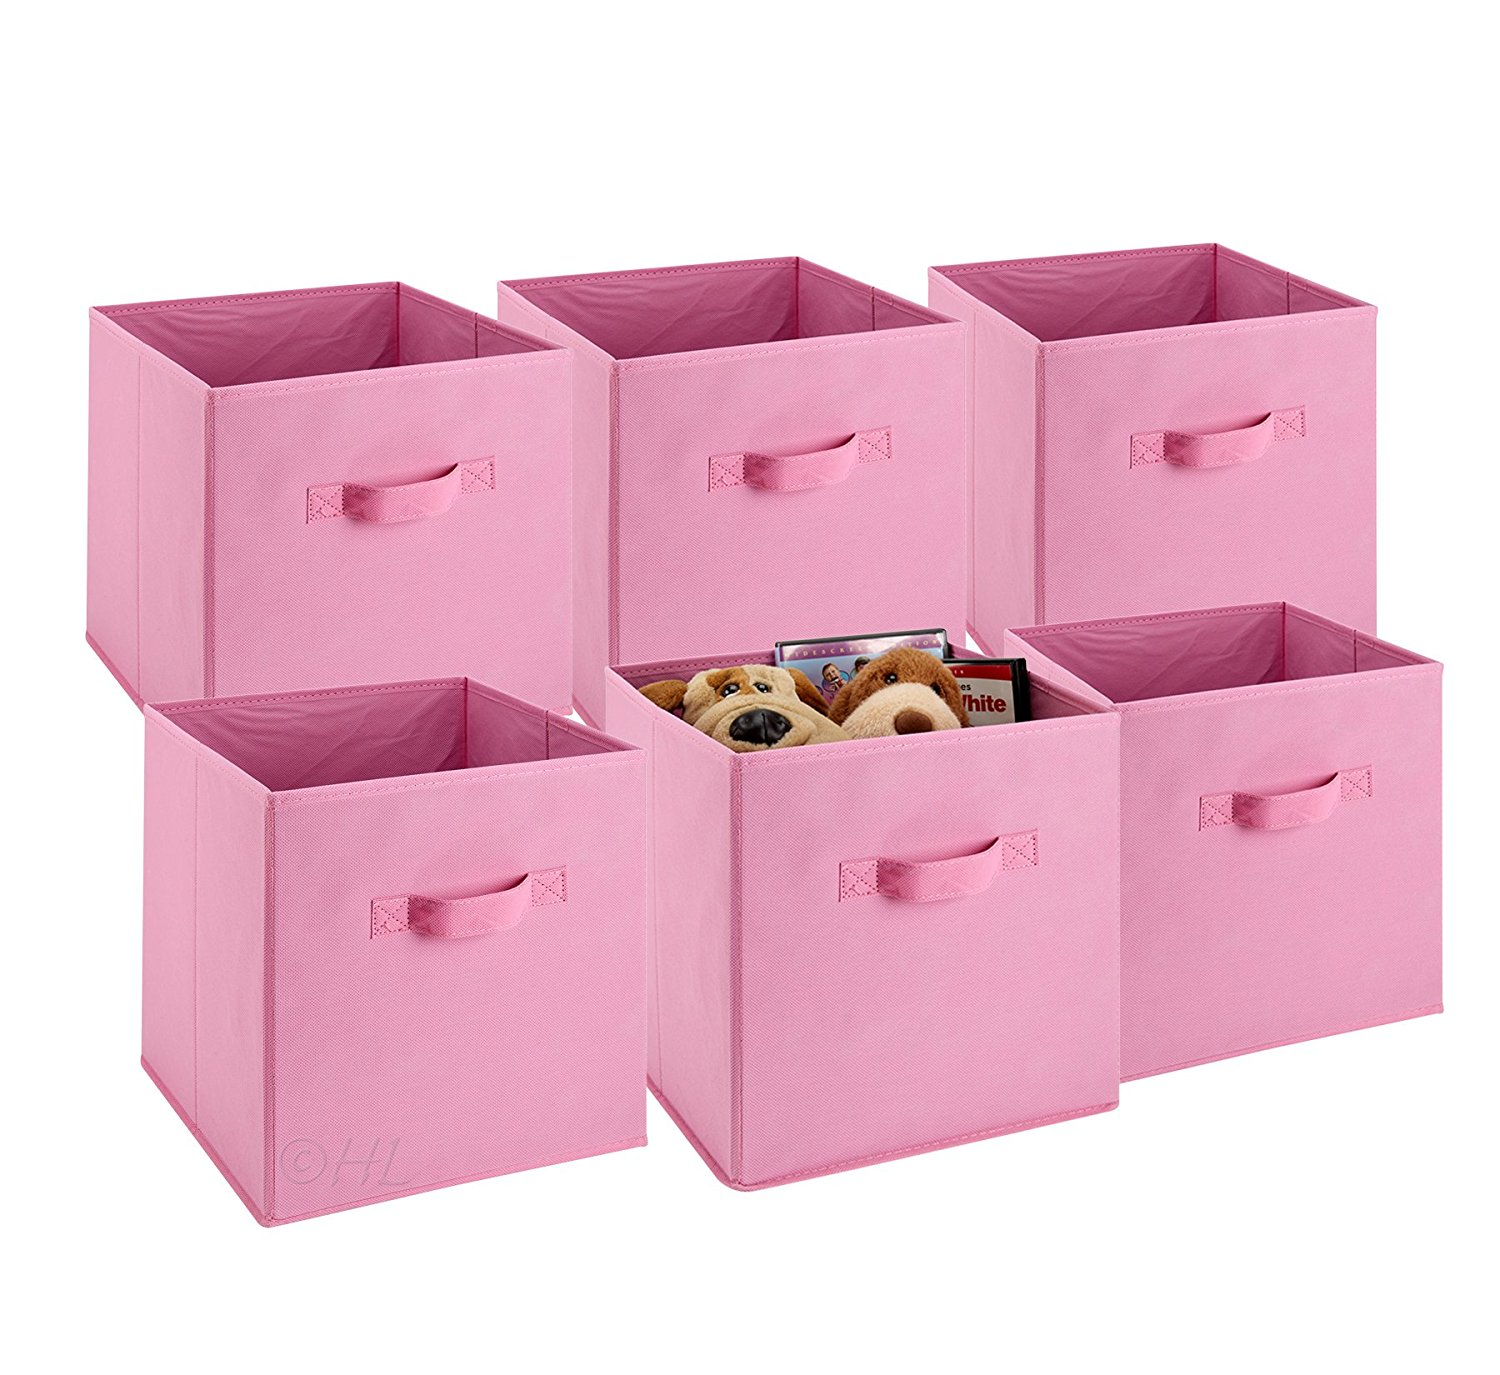 Beau Foldable Cube Storage Bins   6 Pack   These Decorative Fabric Storage Cubes  Are Collapsible And